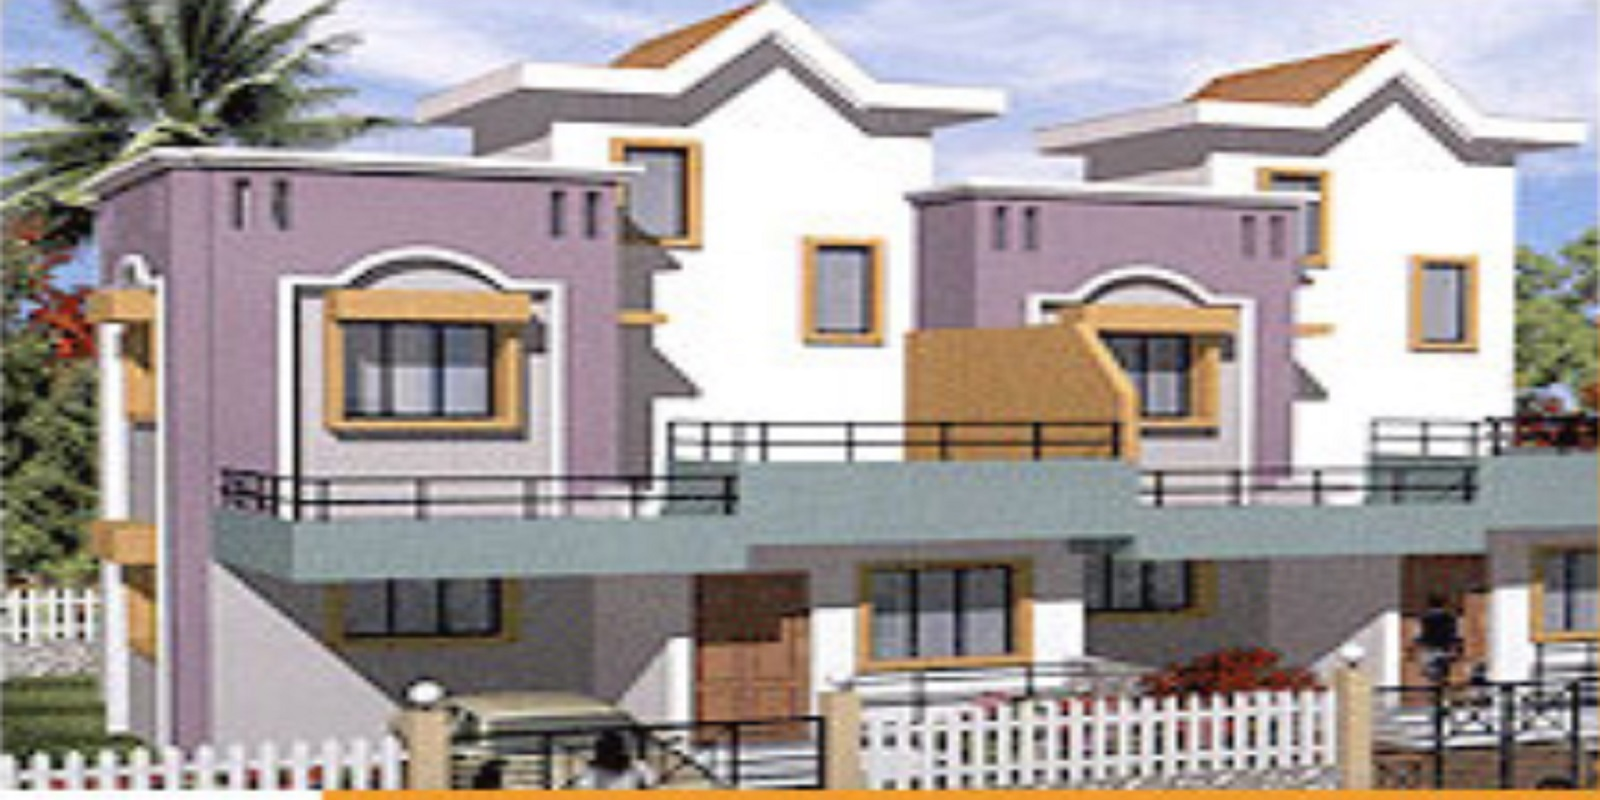 kohinoor village row houses project project large image1